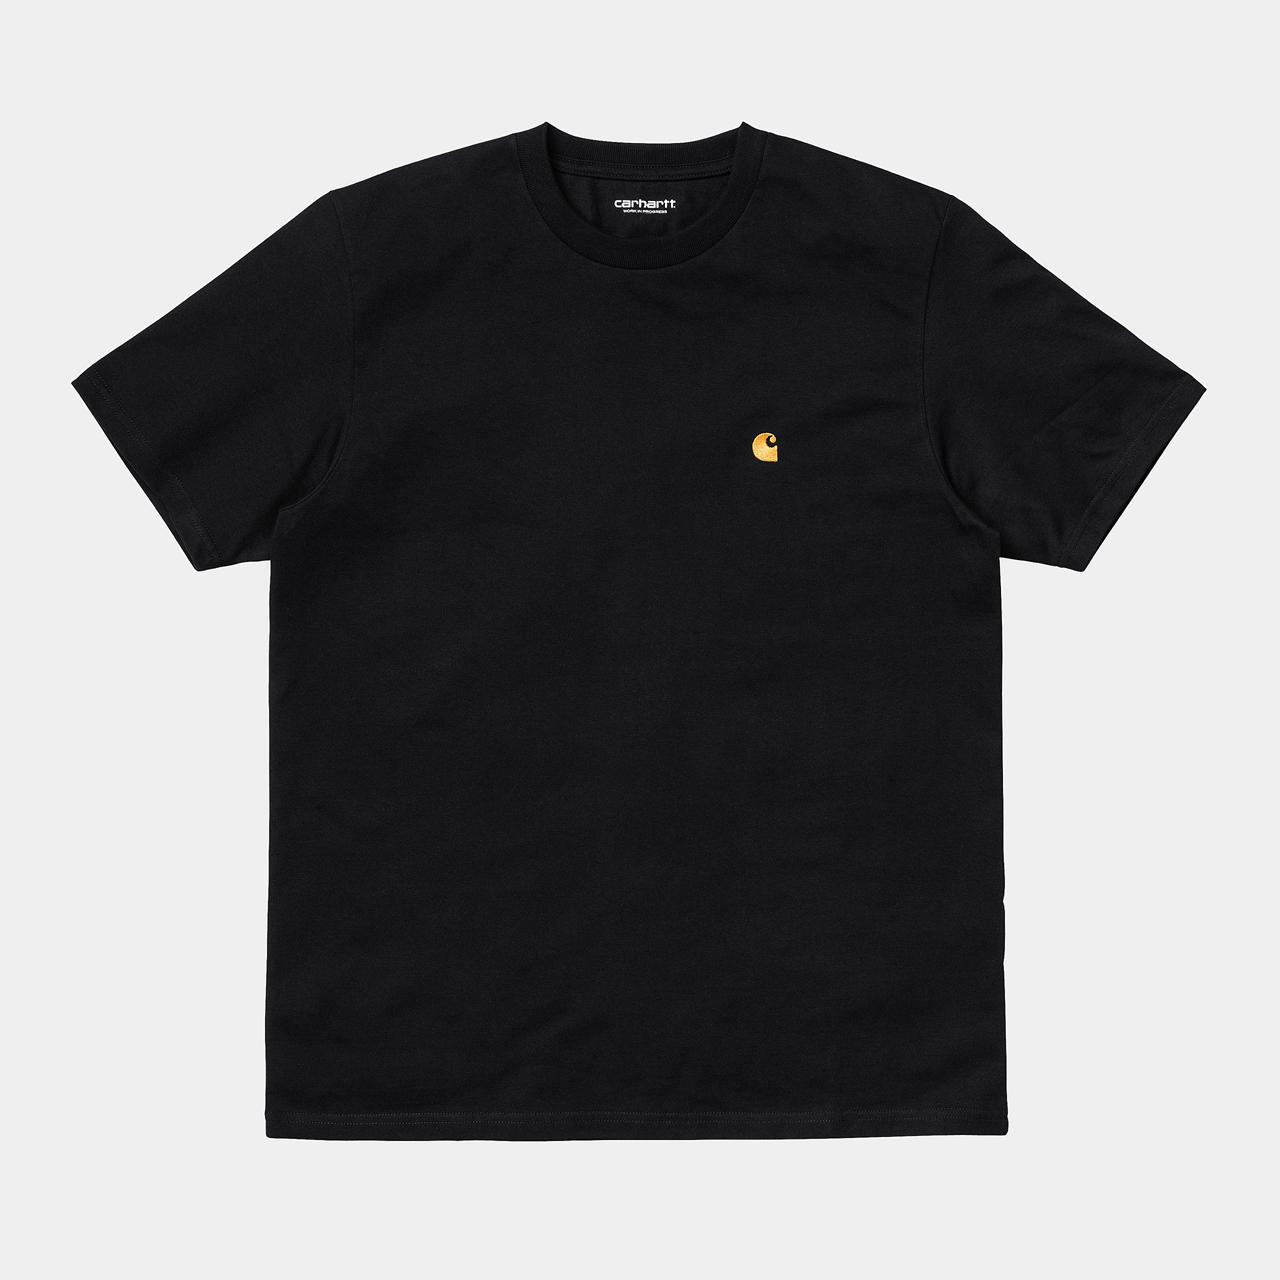 s-s-chase-t-shirt-black-gold_1